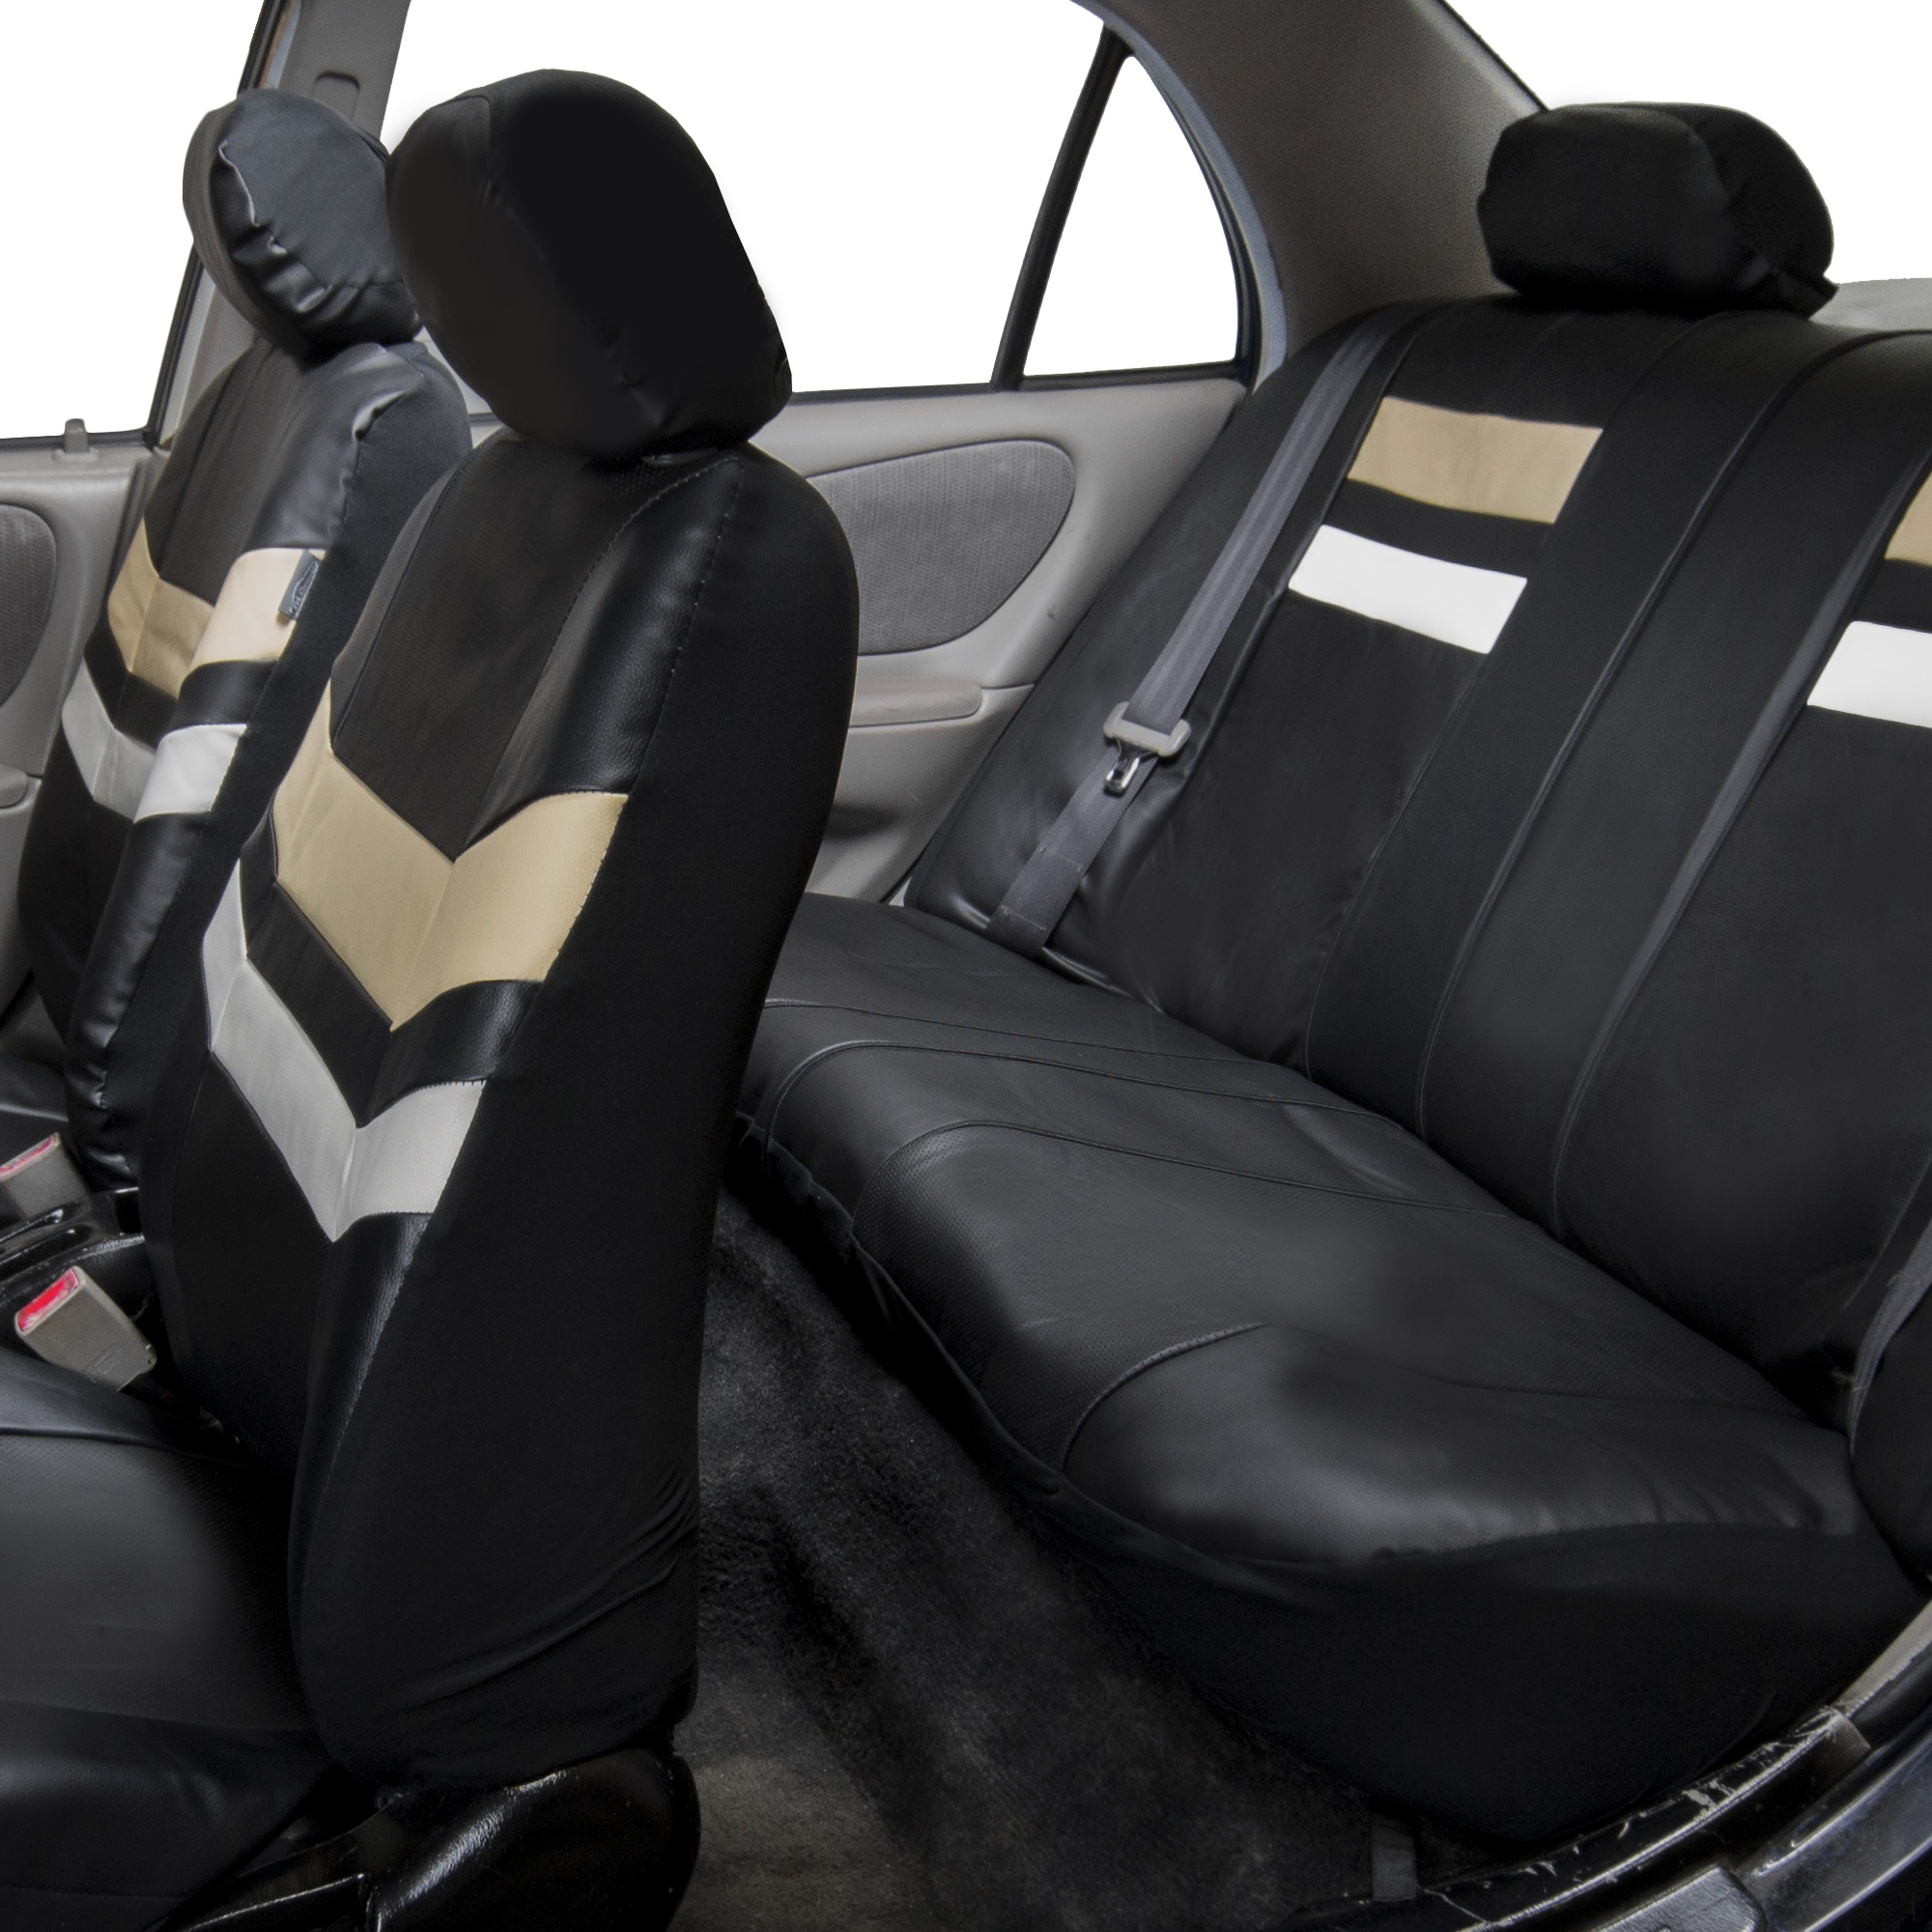 Auto Seat Covers PU Leather For Car Van SUV Truck Top Quality 11